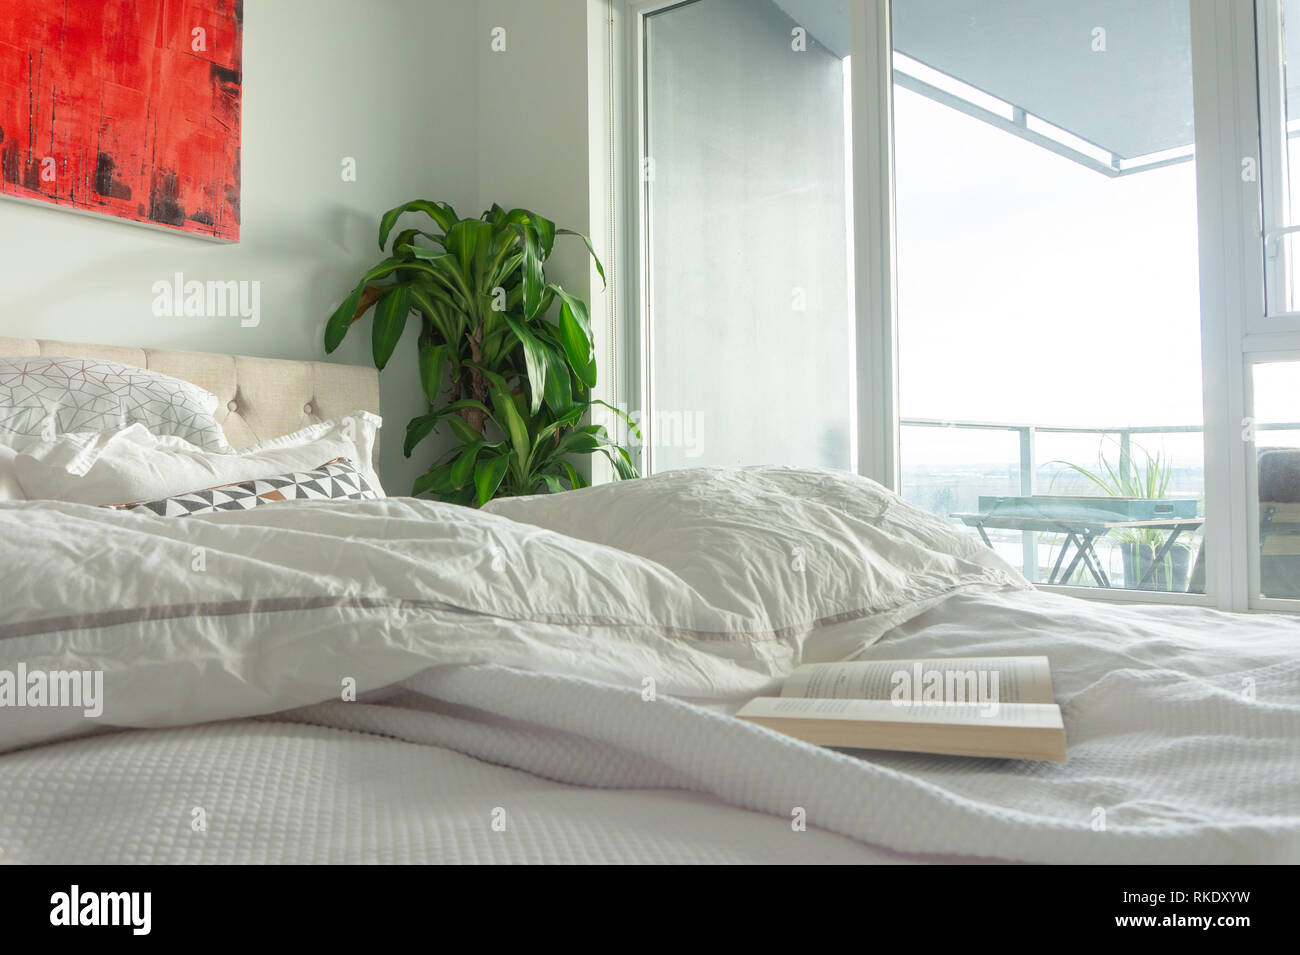 Book on wrinkled, used bed with wall art in a bright apartment or vrbo, bedroom with tall windows and window light. Depicting a staycation, relaxing. - Stock Image